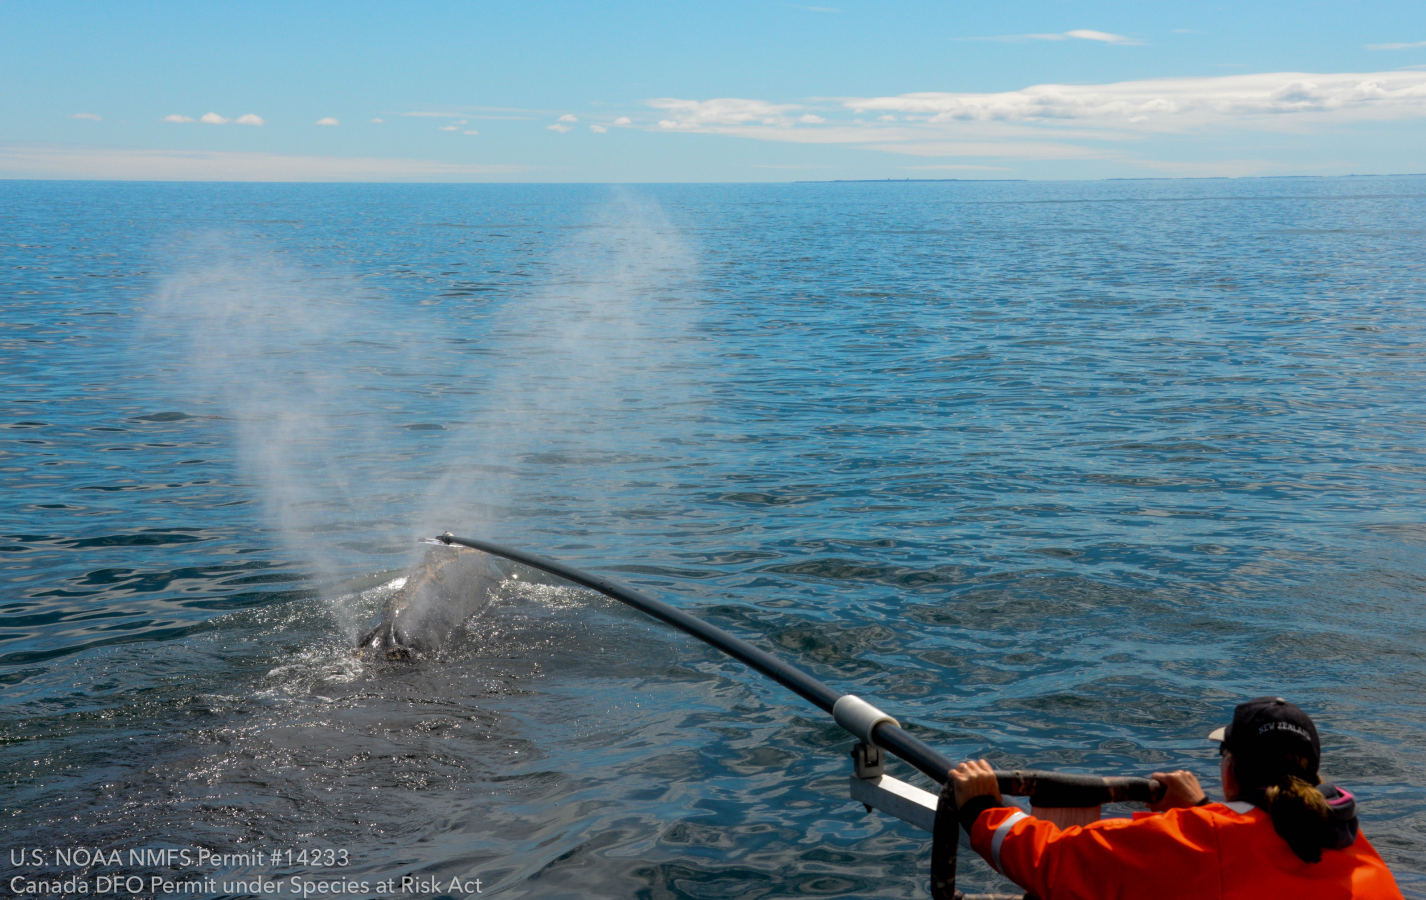 Scientist Dr. Rosalind Rolland collects a blow sample from a surfacing right whale.